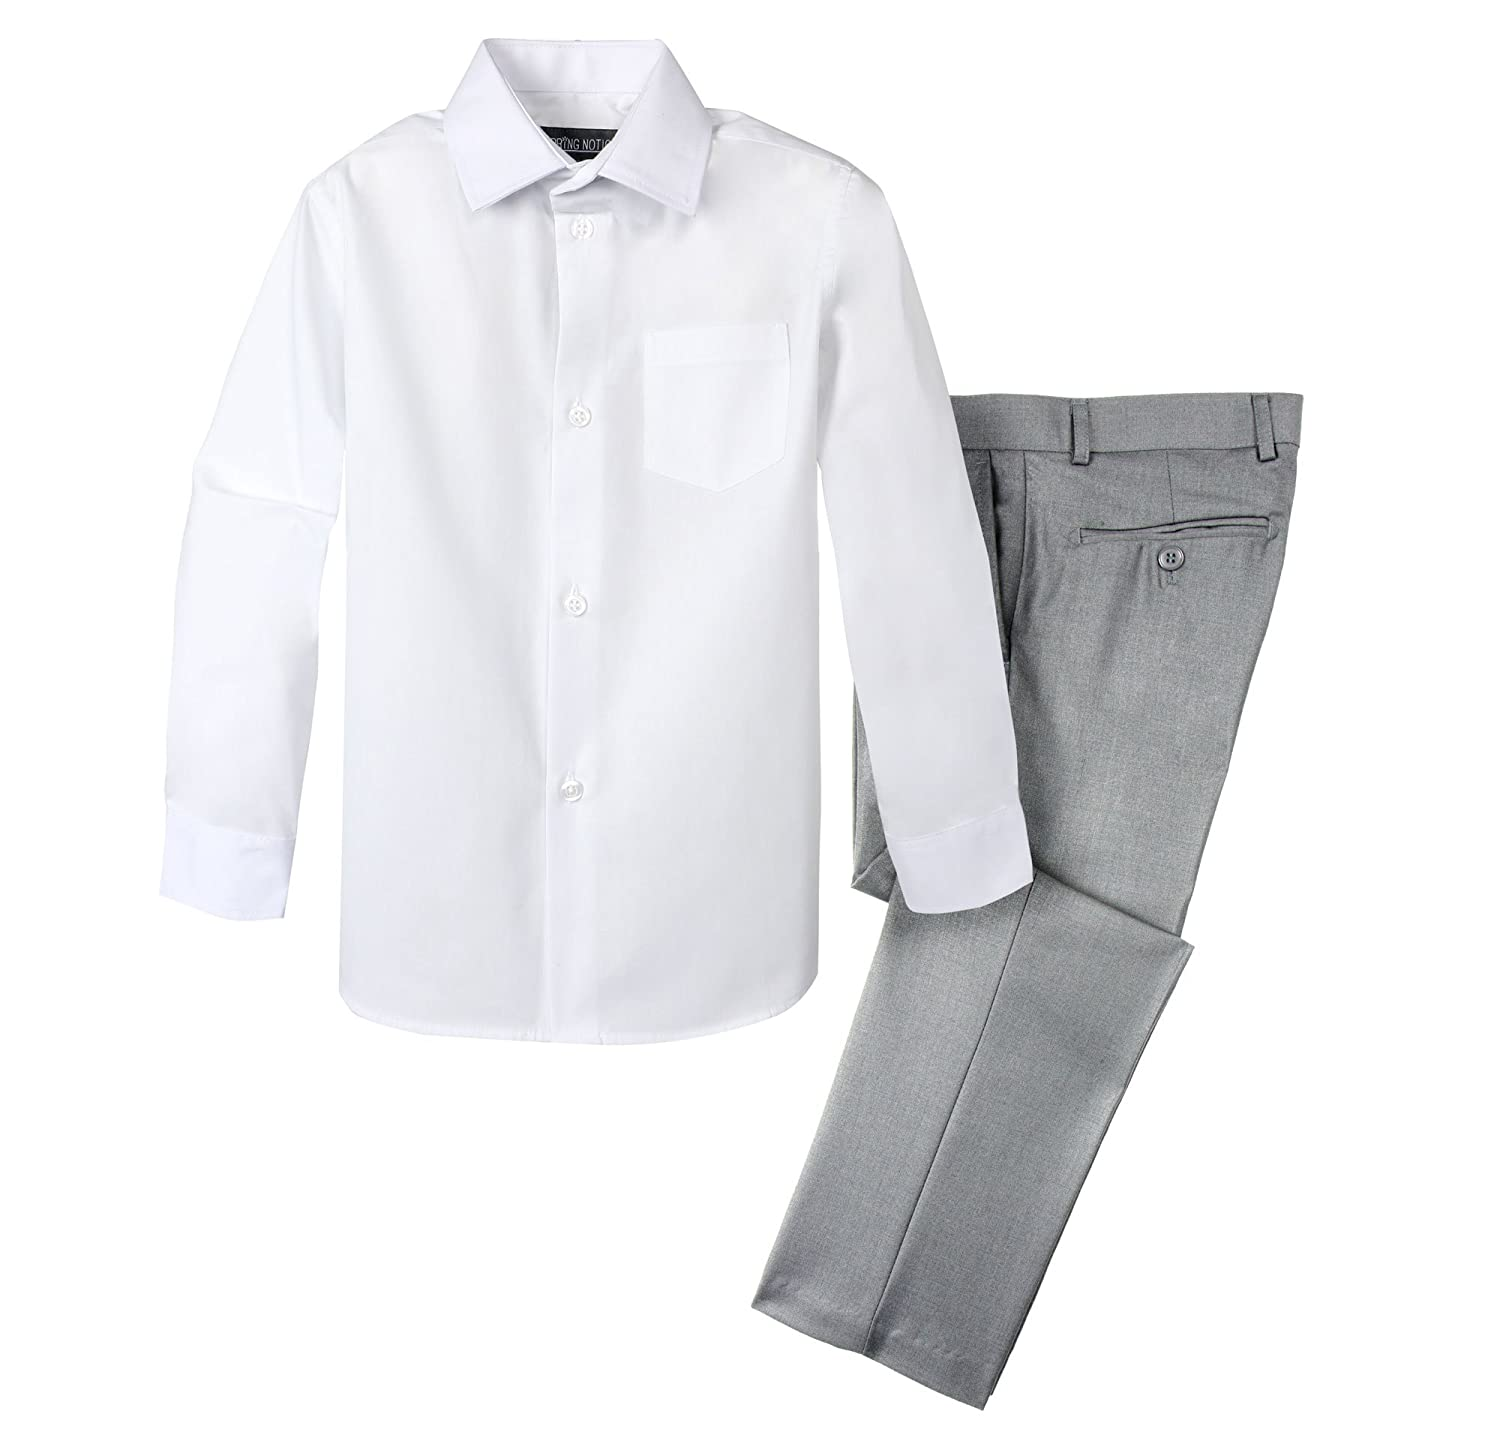 Spring Notion Boys' Dress Pants and Shirt SN338S-SNS-338S